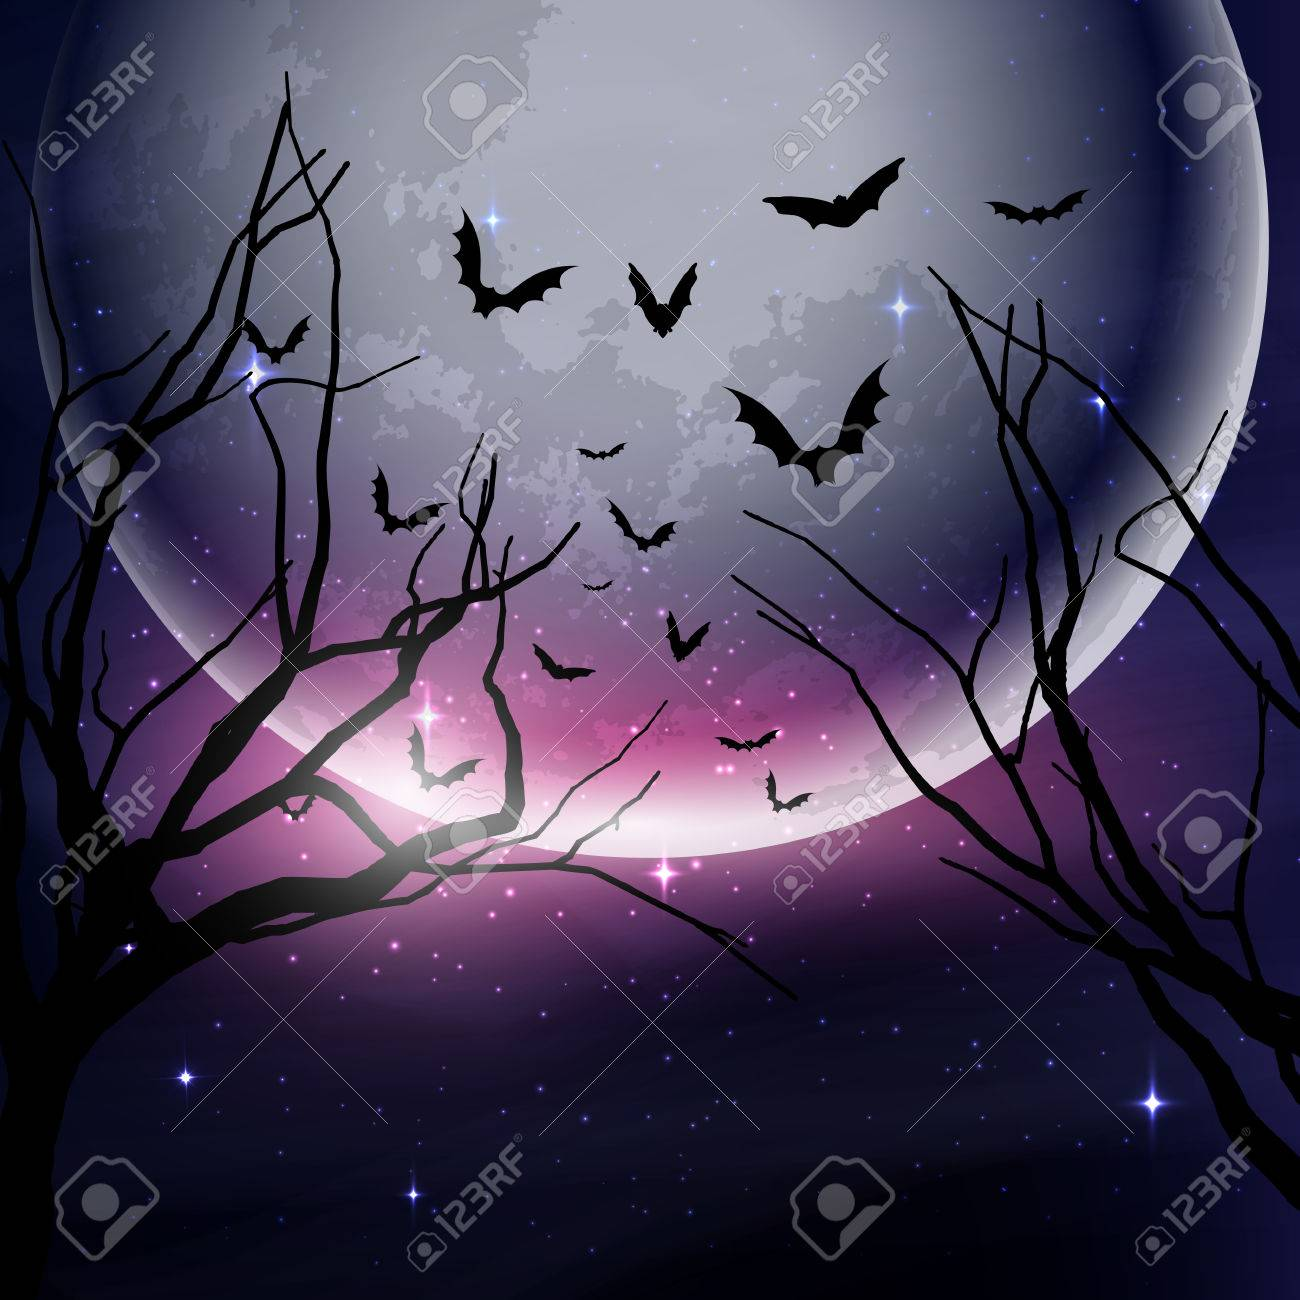 Halloween night sky background with tree silhouettes against..